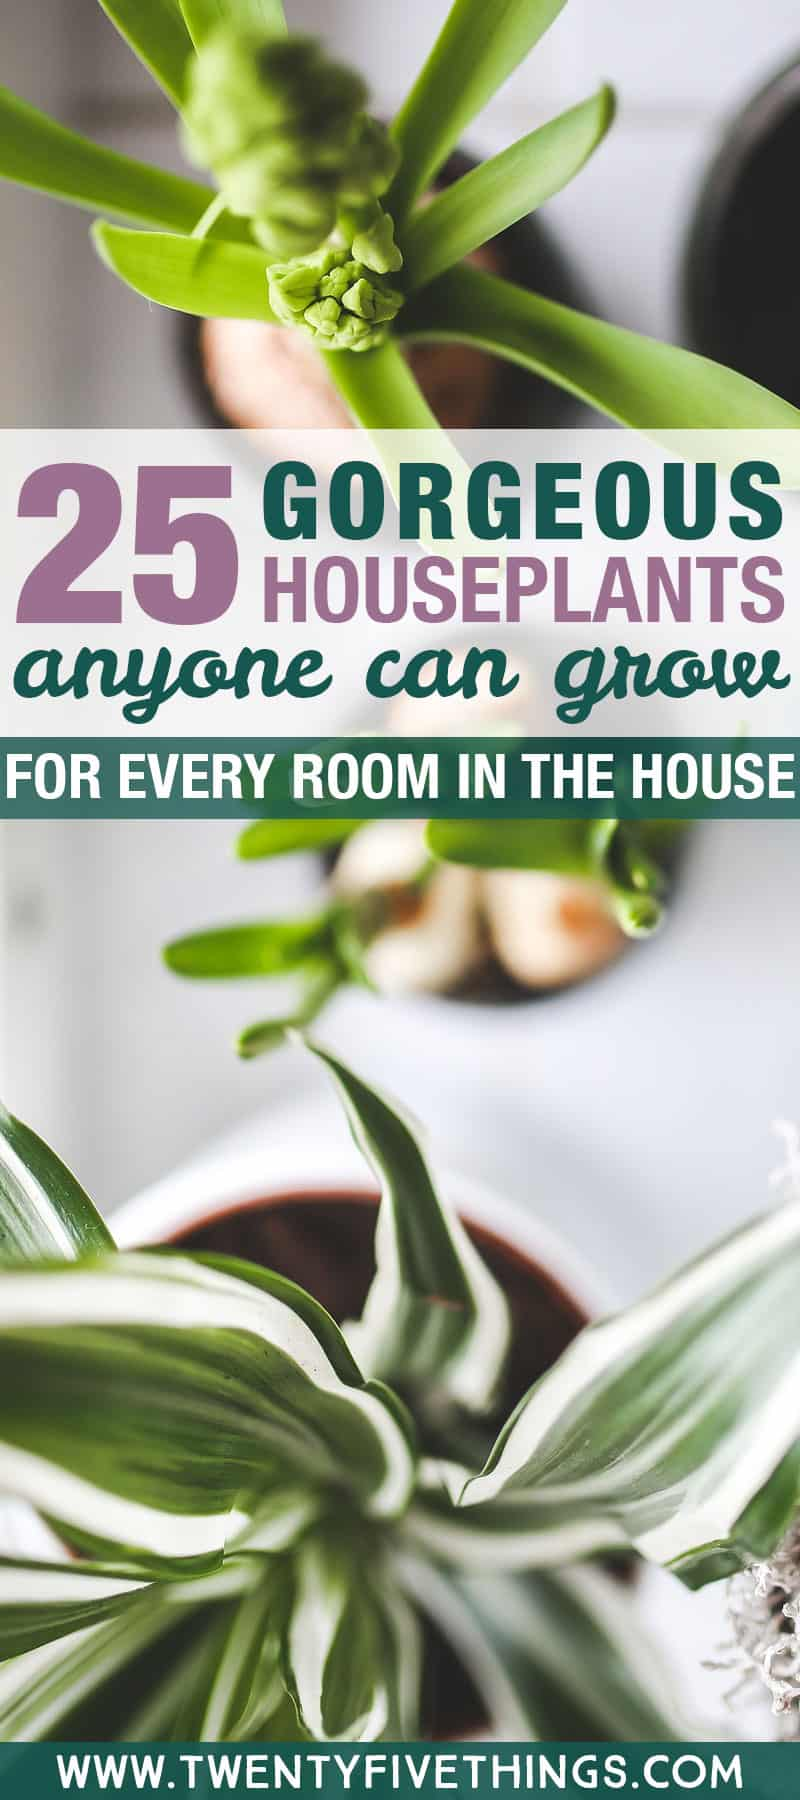 Indoor houseplant guide for every room in the house. Good low-light houseplants, and edible plants you can grow indoors. Lots of ideas for easy to grow houseplants.